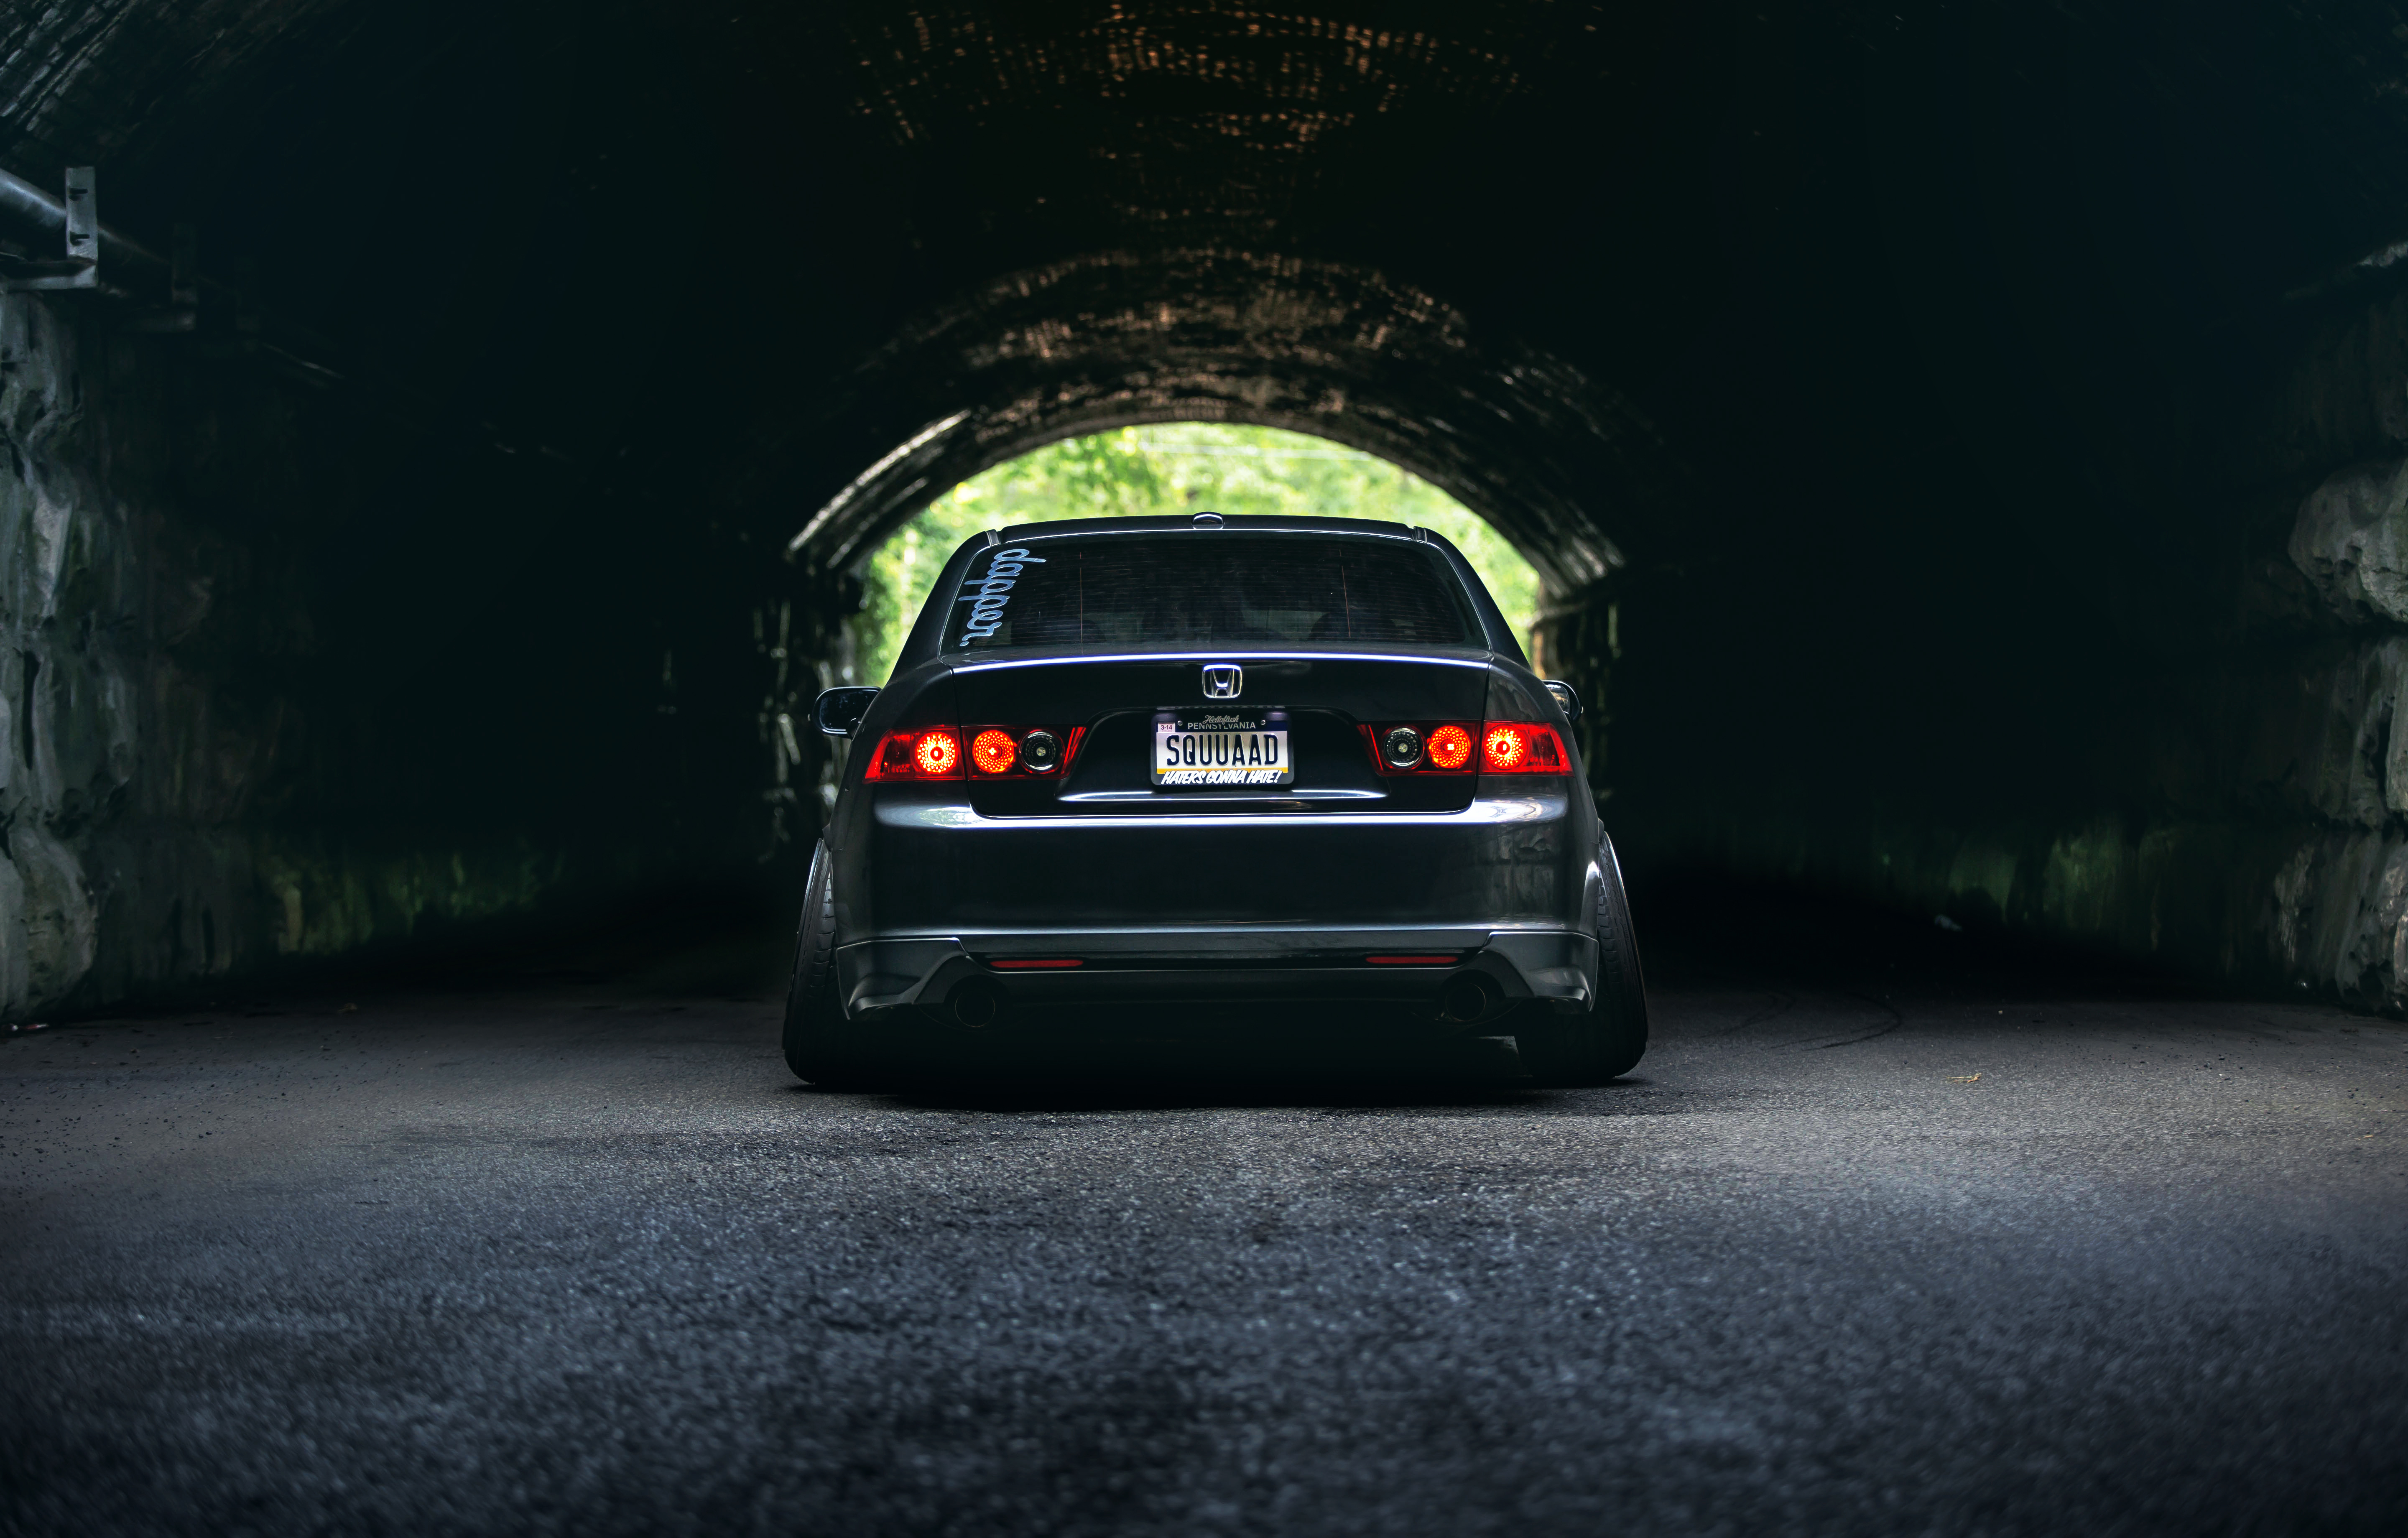 5760x3679 - Acura TSX Wallpapers 24